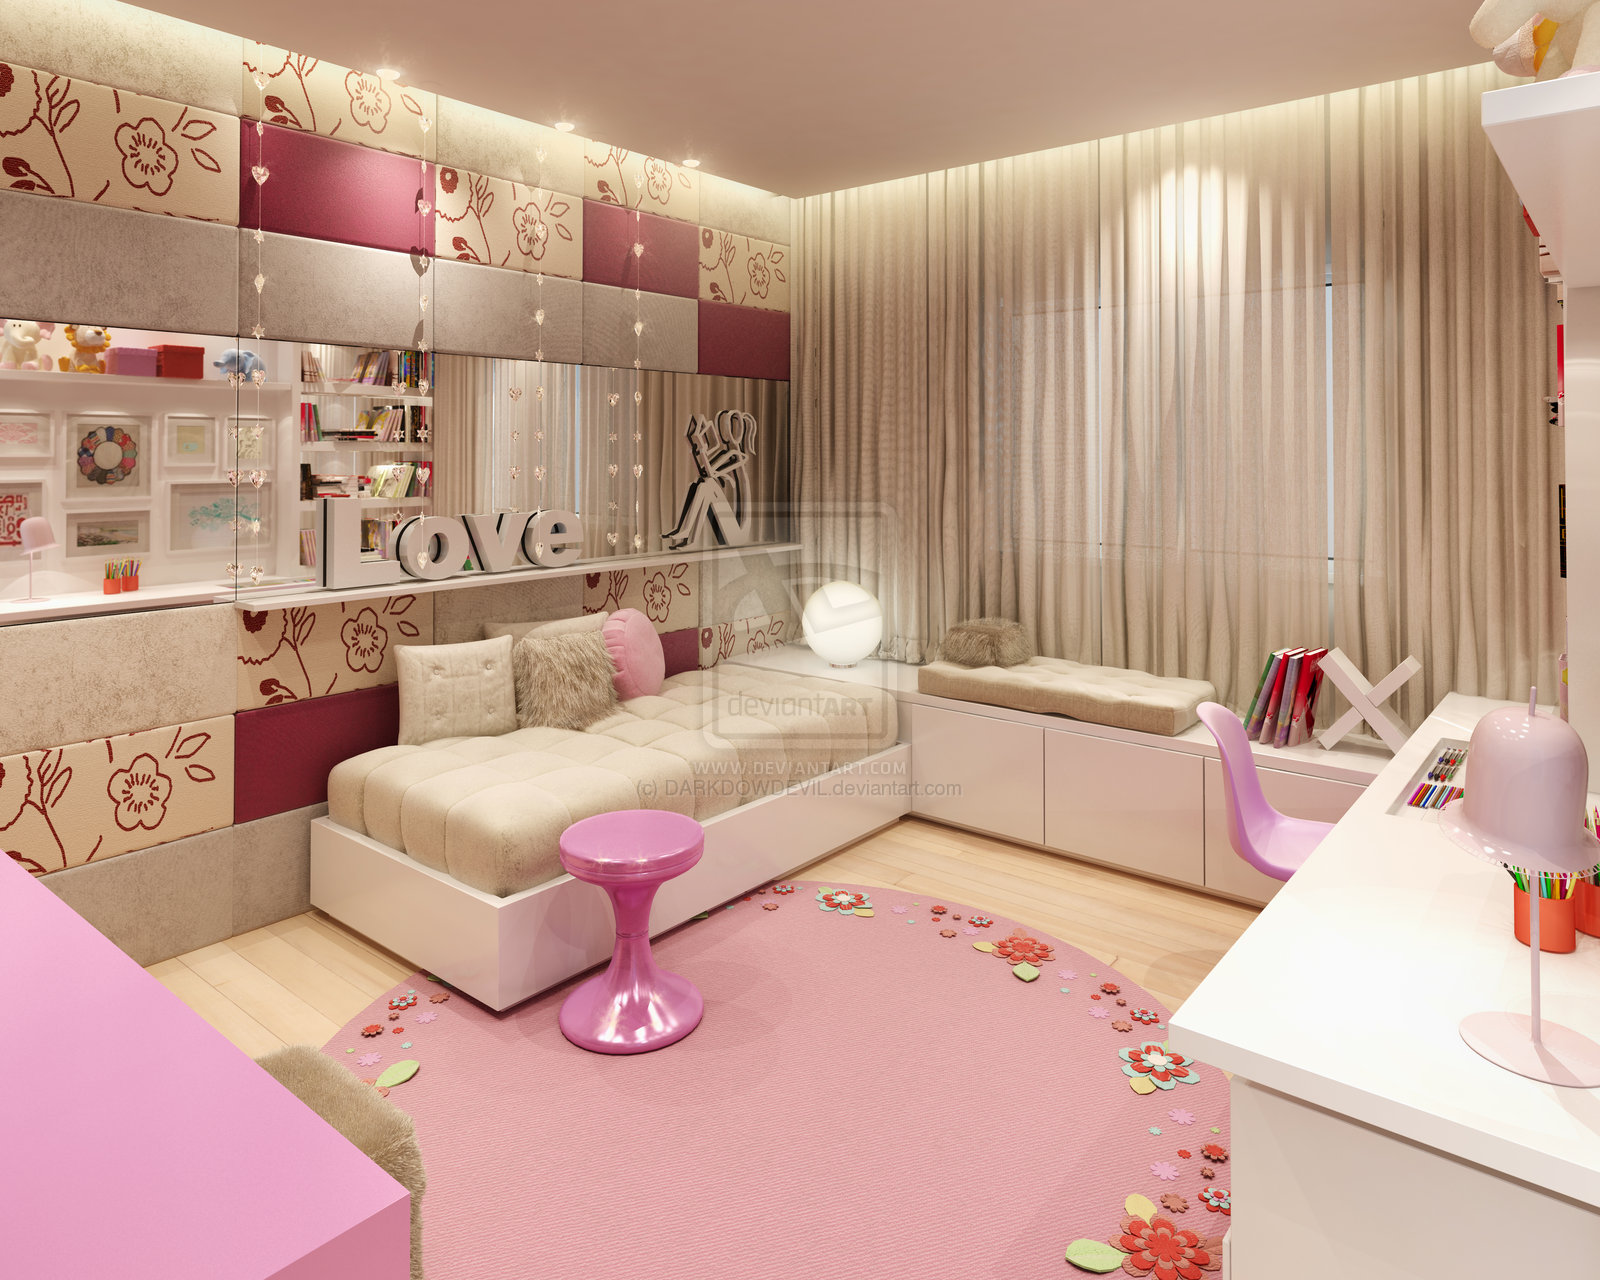 Teenage room designs for Teenage bedroom designs ideas